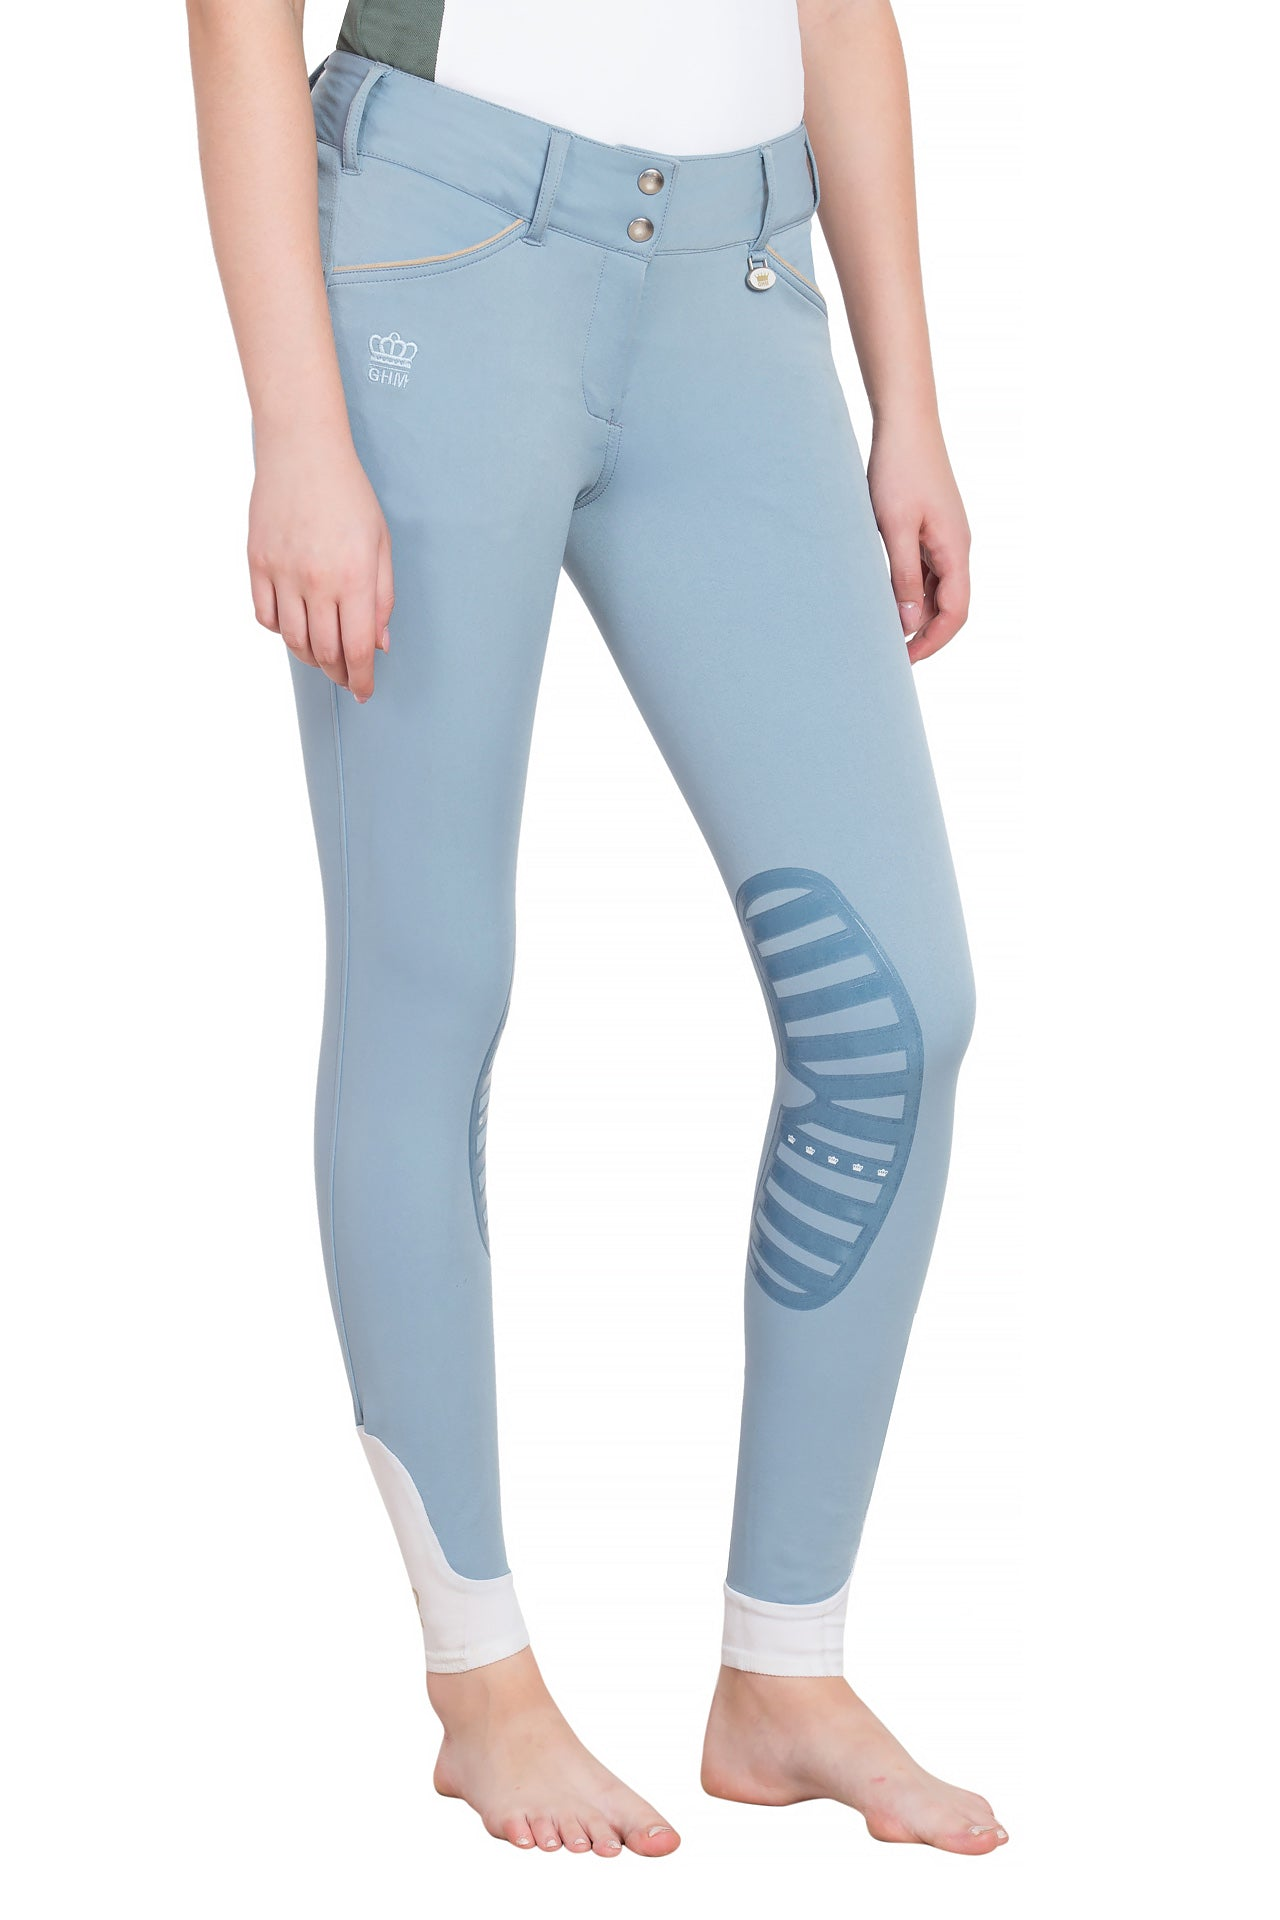 GHM Add Back Knee Patch Breeches